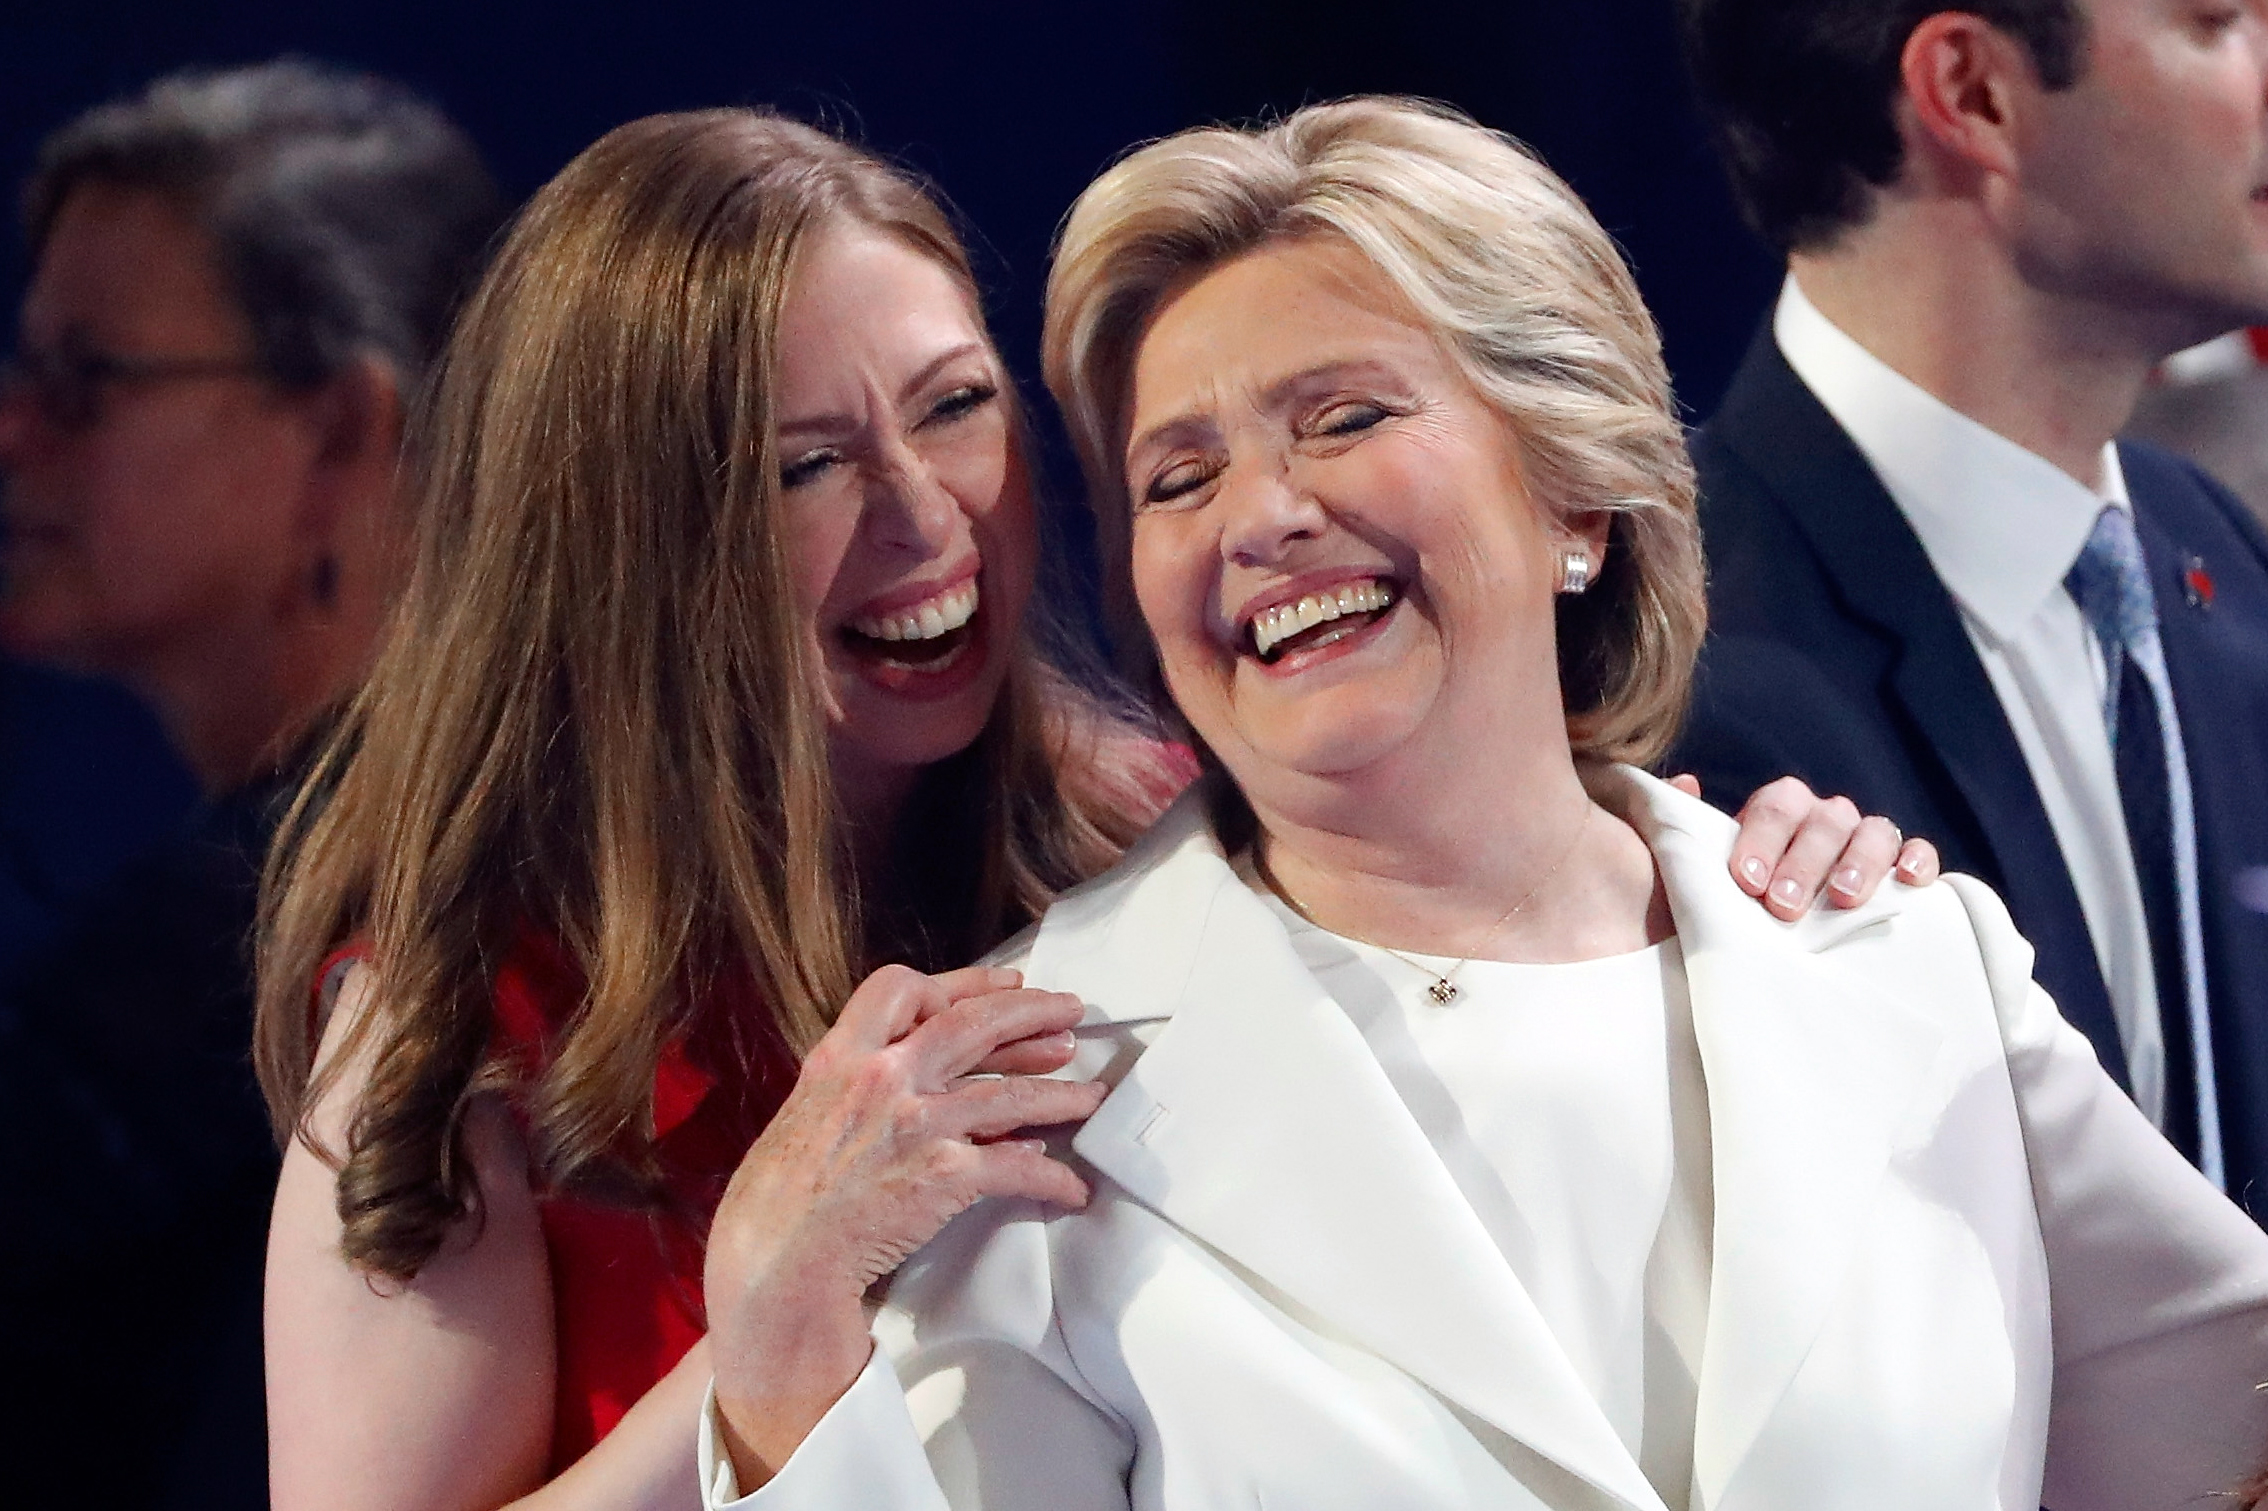 Chelsea Clinton's Twitter is filled with educational and empowering gold these days